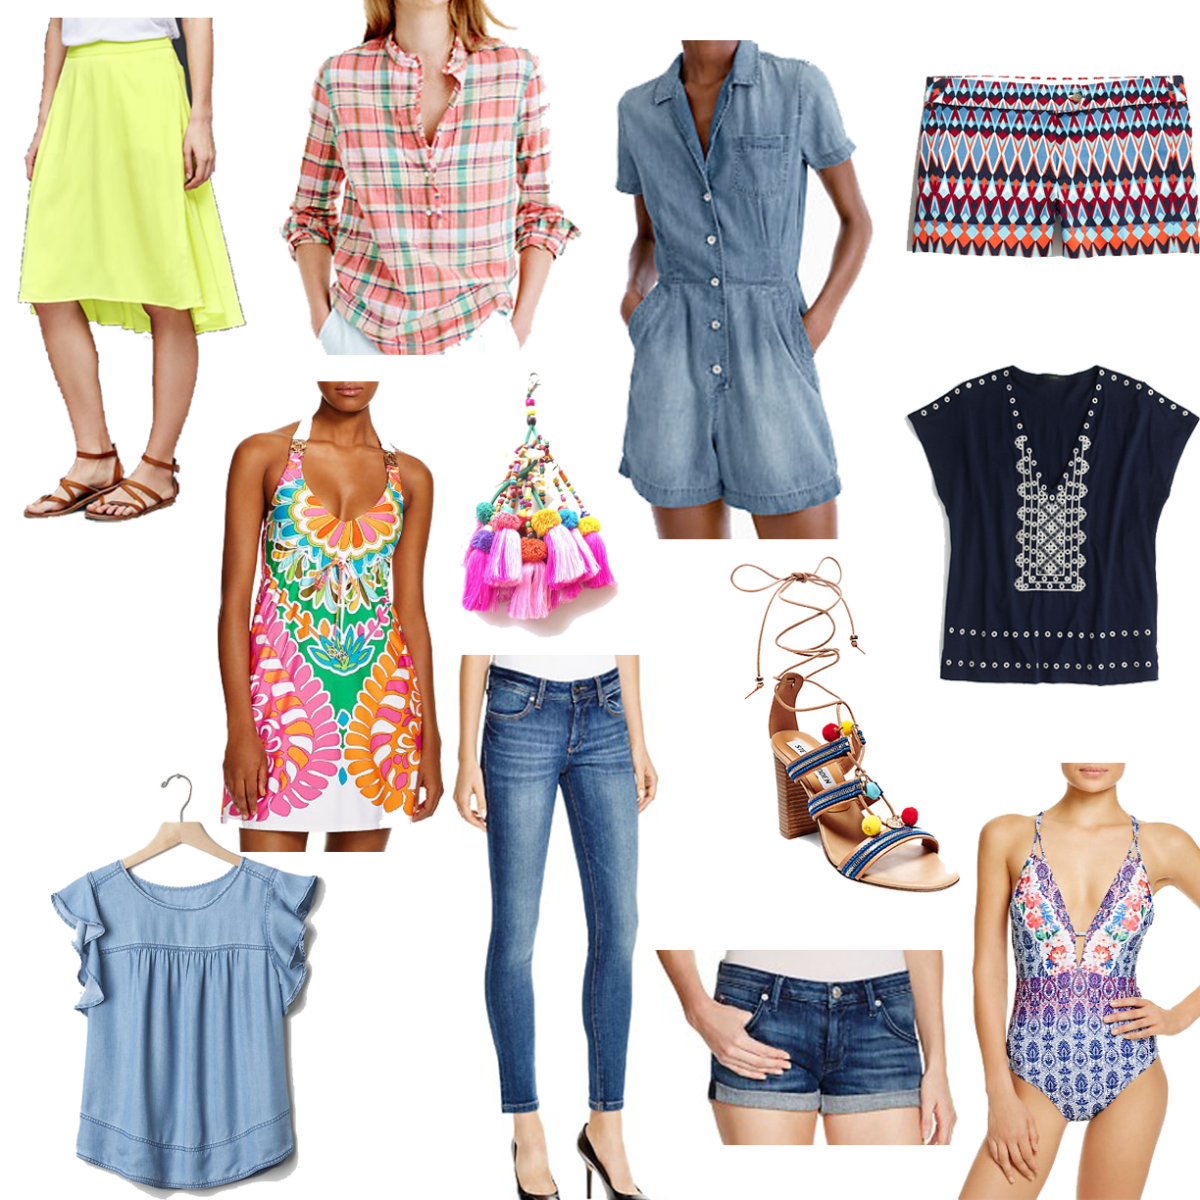 4th of July Sale Roundup!